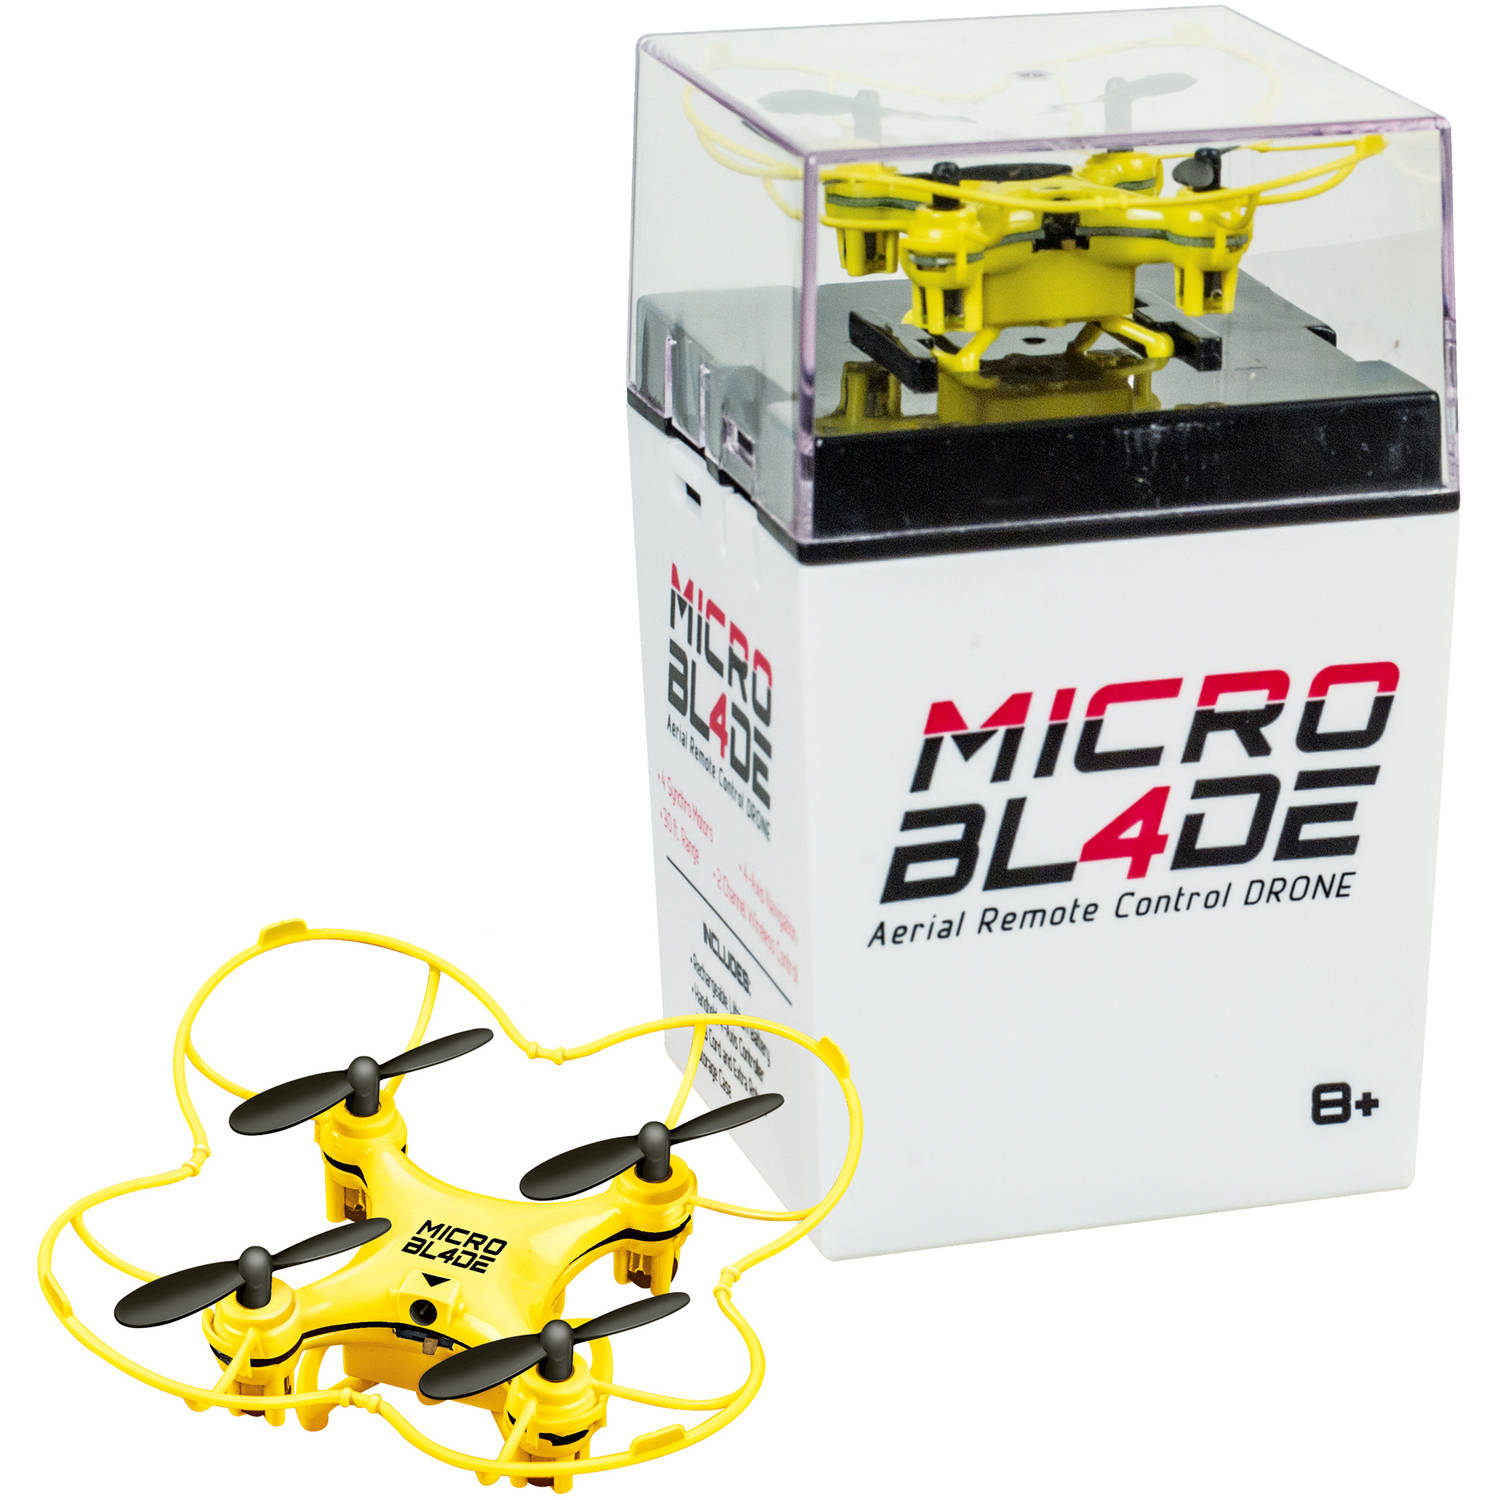 Micro Blade RC Drone, Yellow